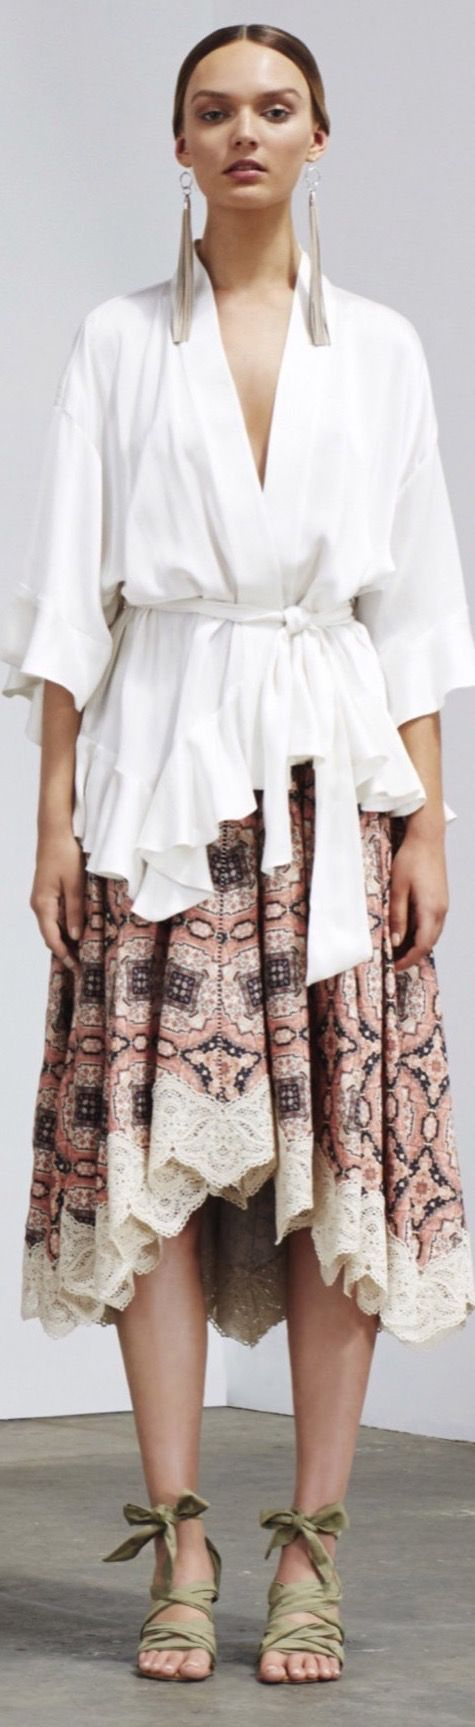 Zimmerman Resort 2016 . Both skirt and blouse are full of gathered fabric